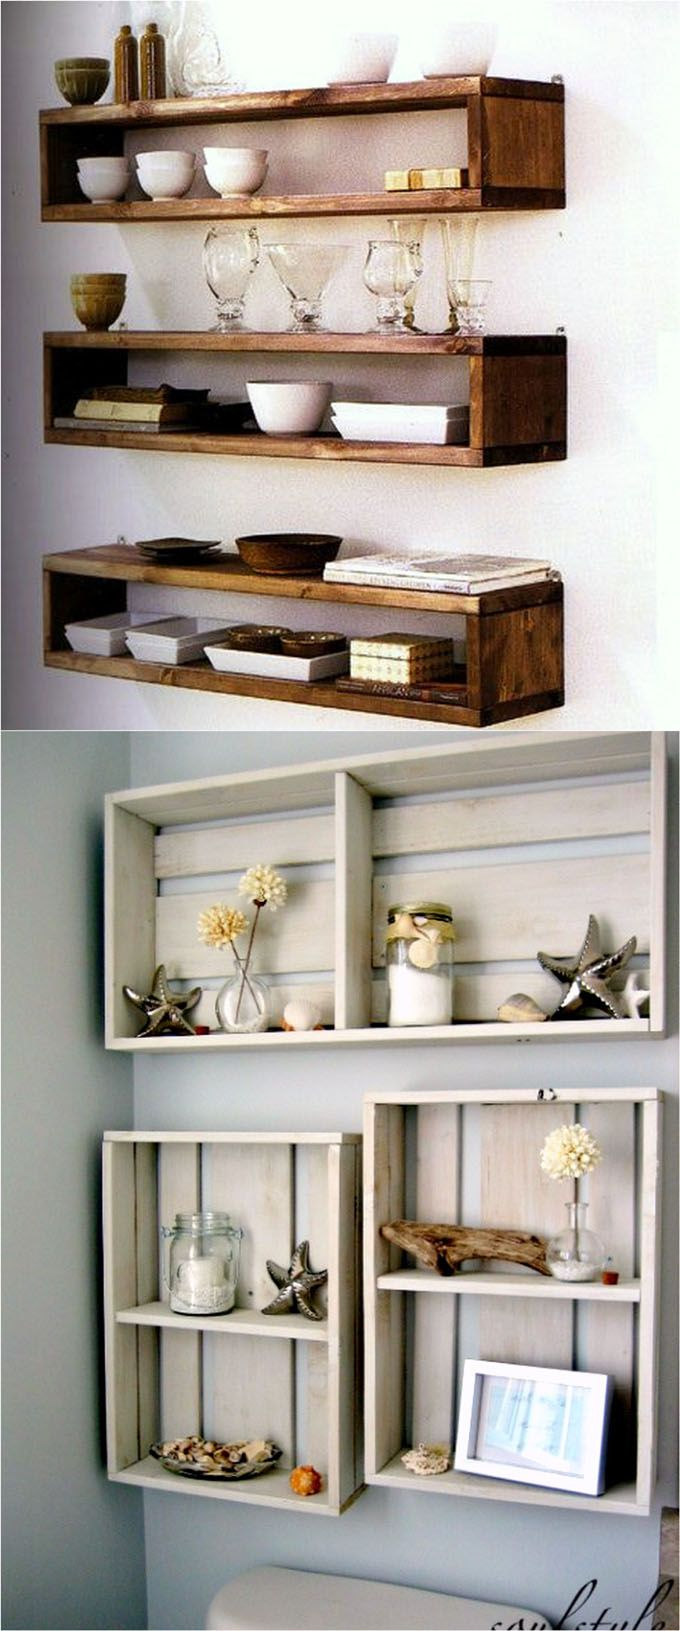 Wall Shelves Ideas Living Room Best 25 Wall Shelves Ideas On Pinterest  Shelves Wall Shelving